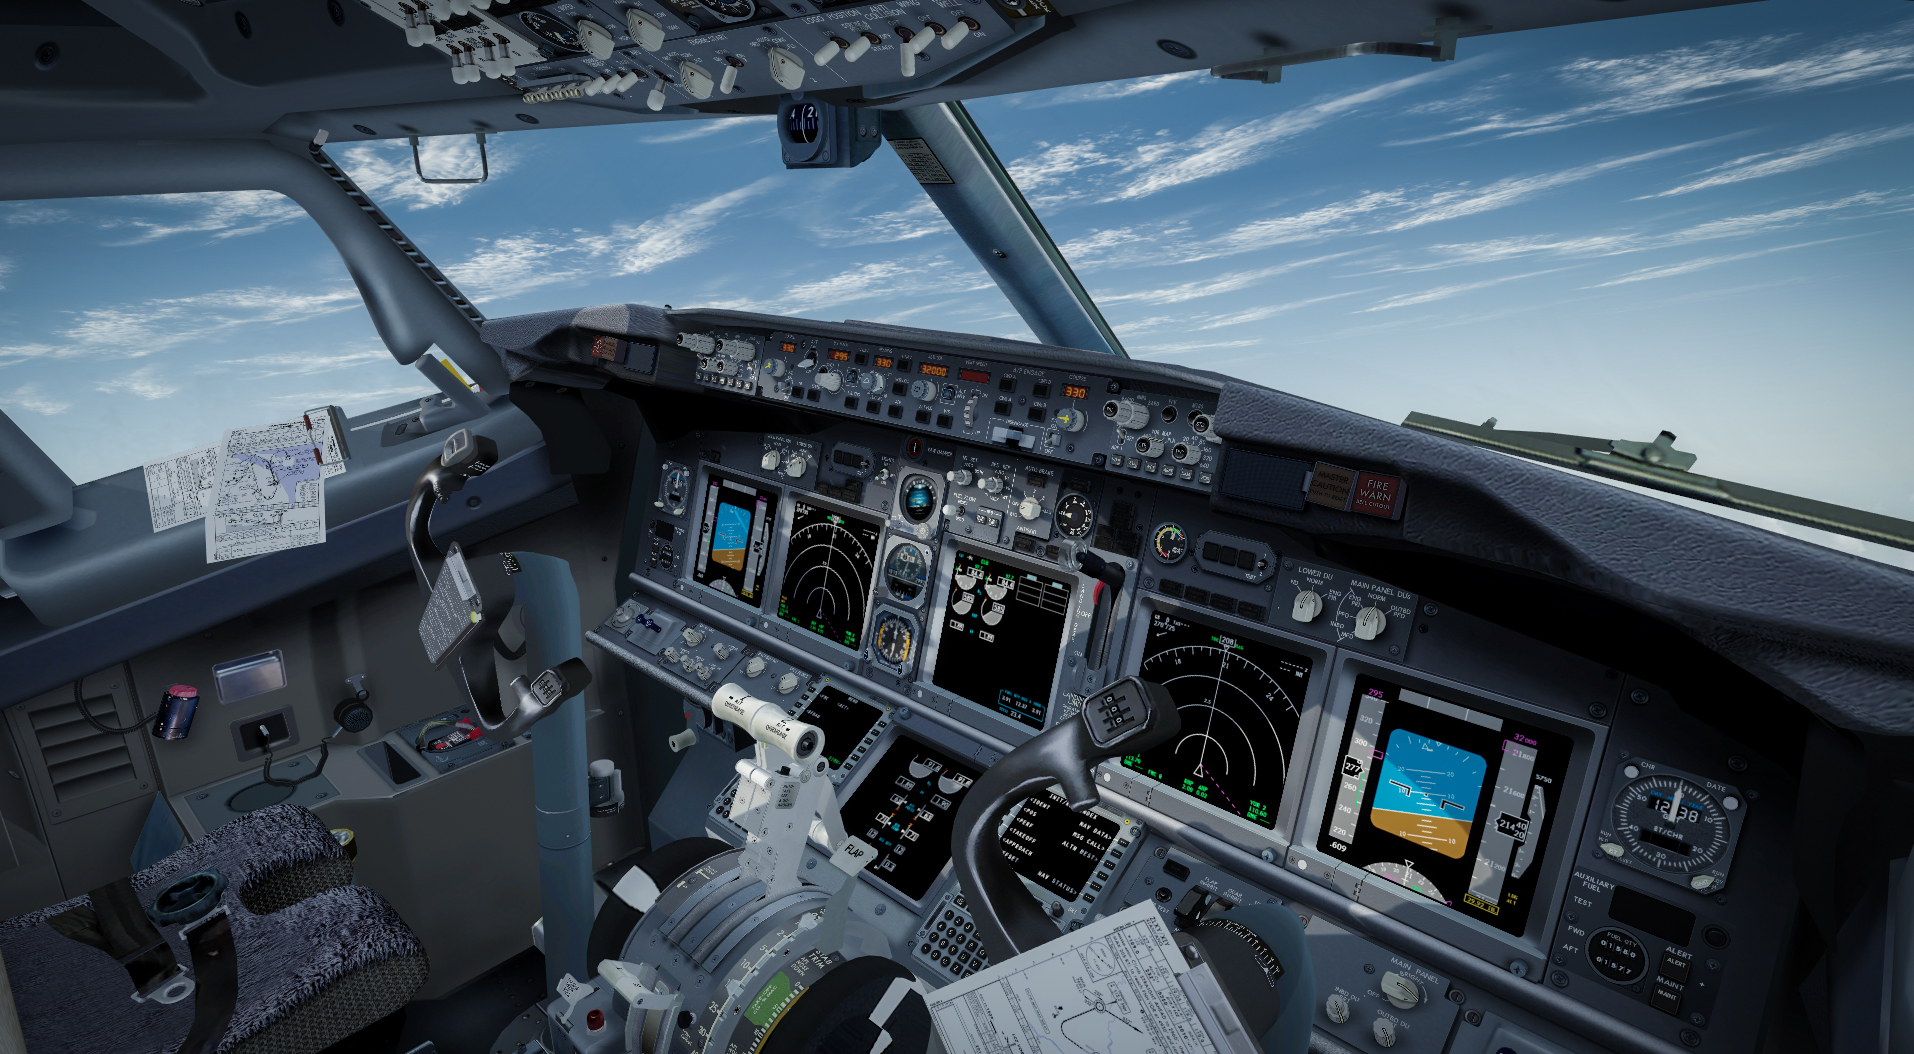 737NG HD Texture Pak for 64-bit P3D v4 (Released) - iFly